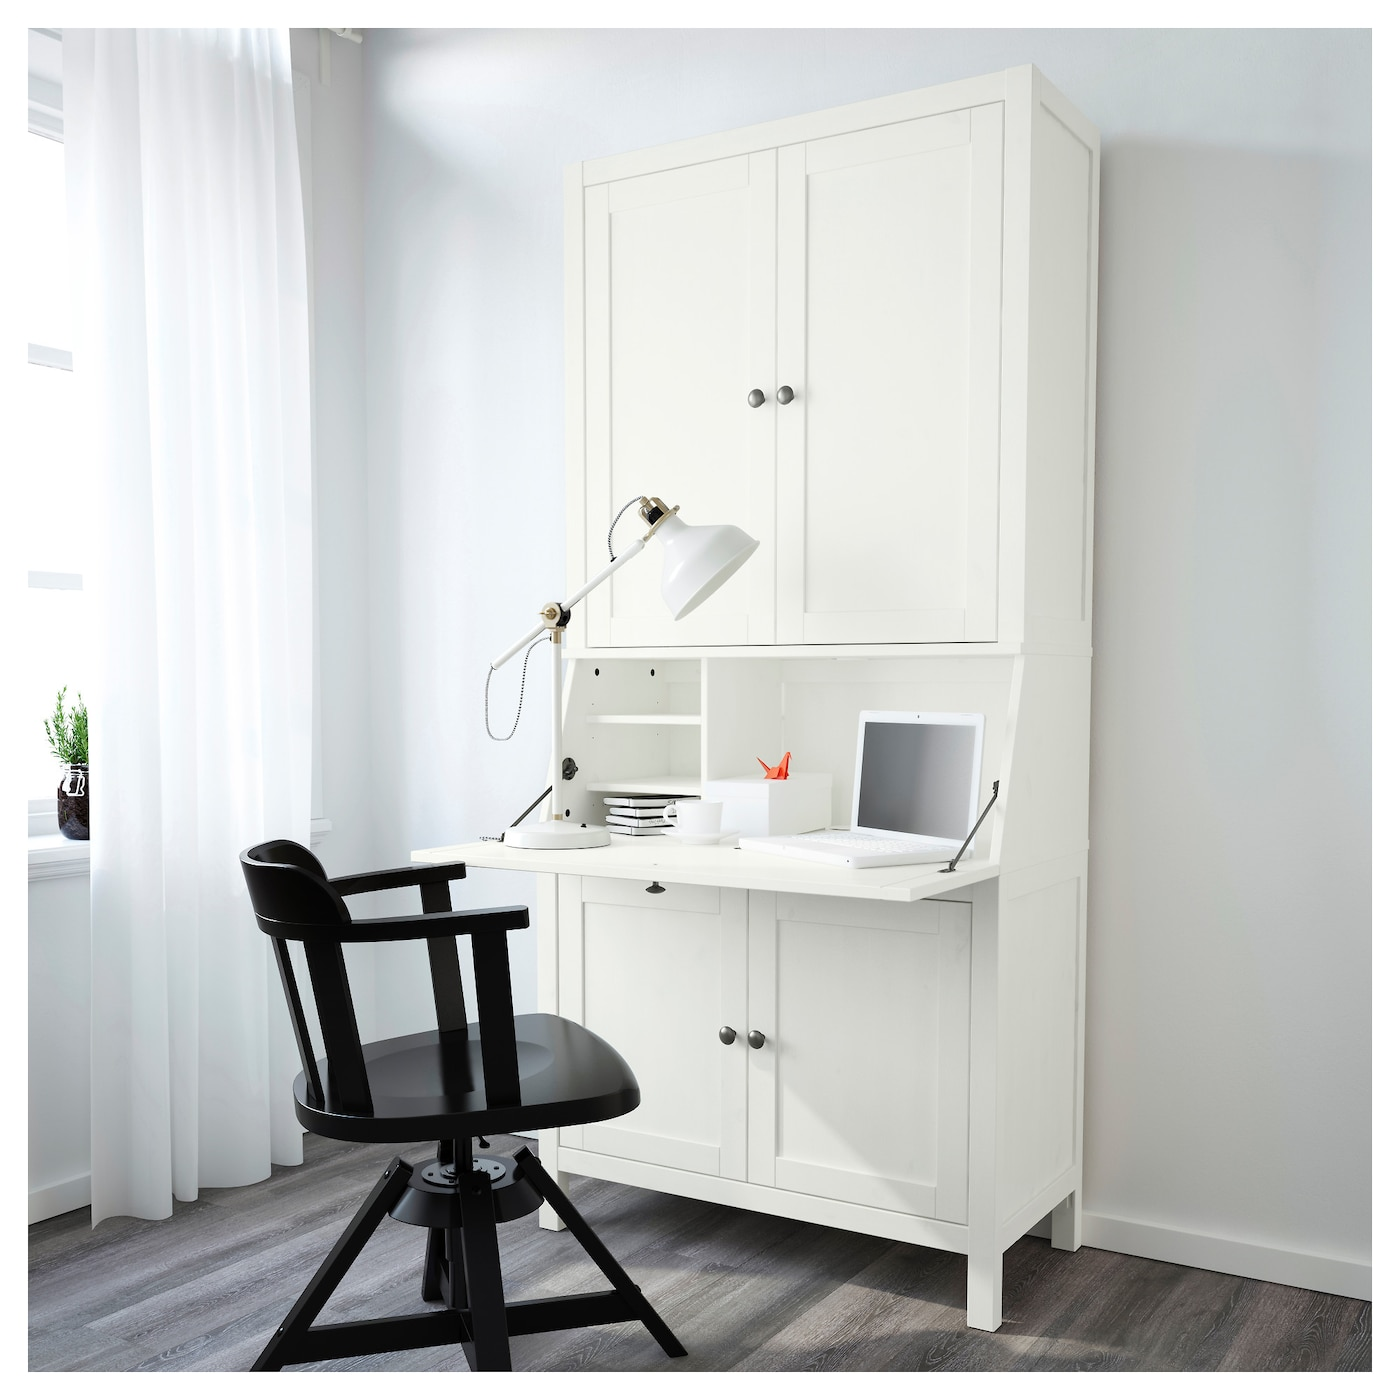 IKEA HEMNES bureau with add-on-unit Solid wood is a durable natural material.